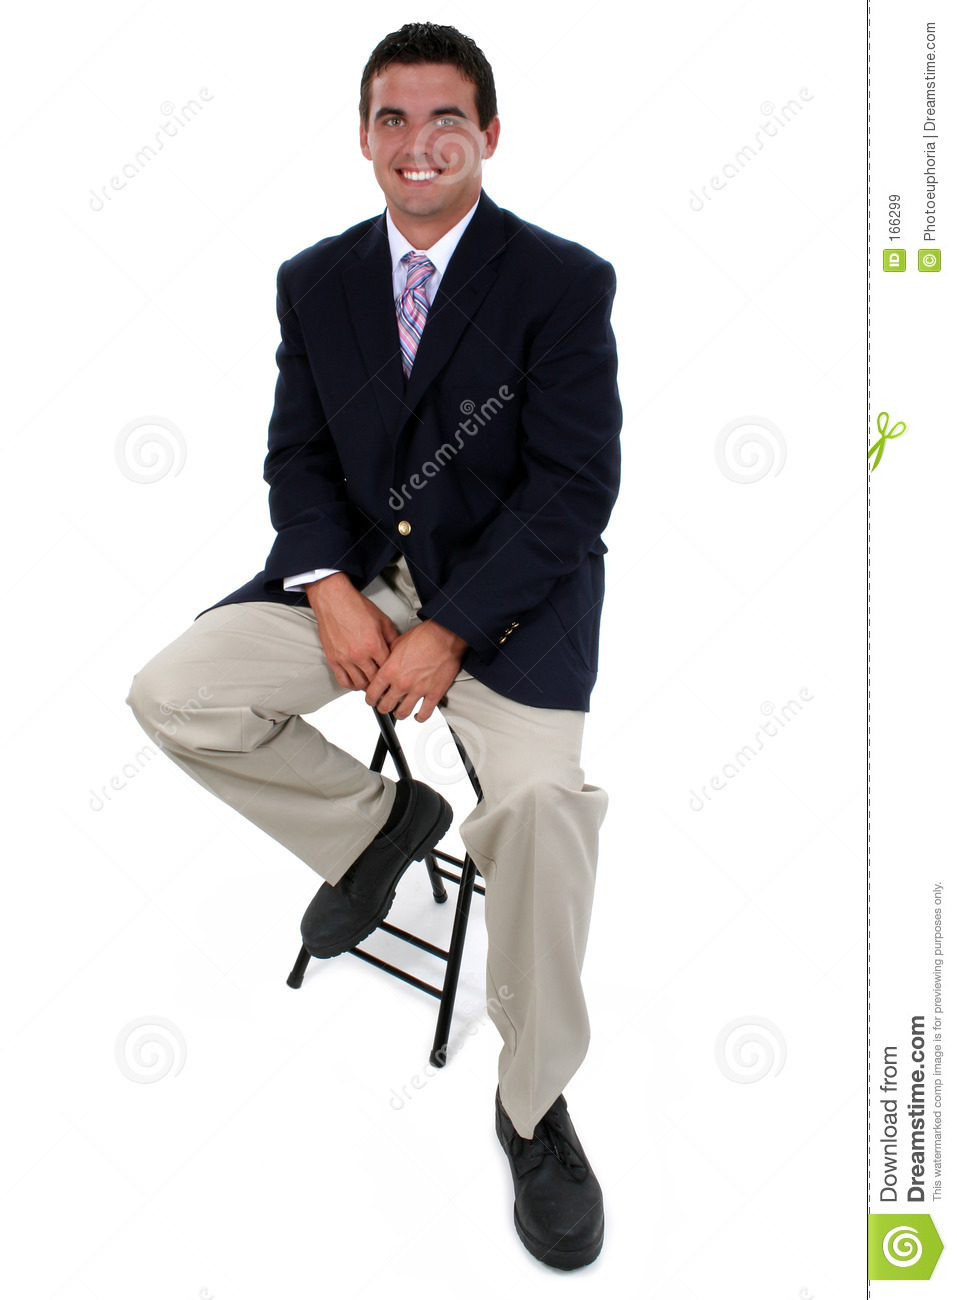 Attractive Businessman Sitting On Stool Royalty Free Stock Images Image 166299